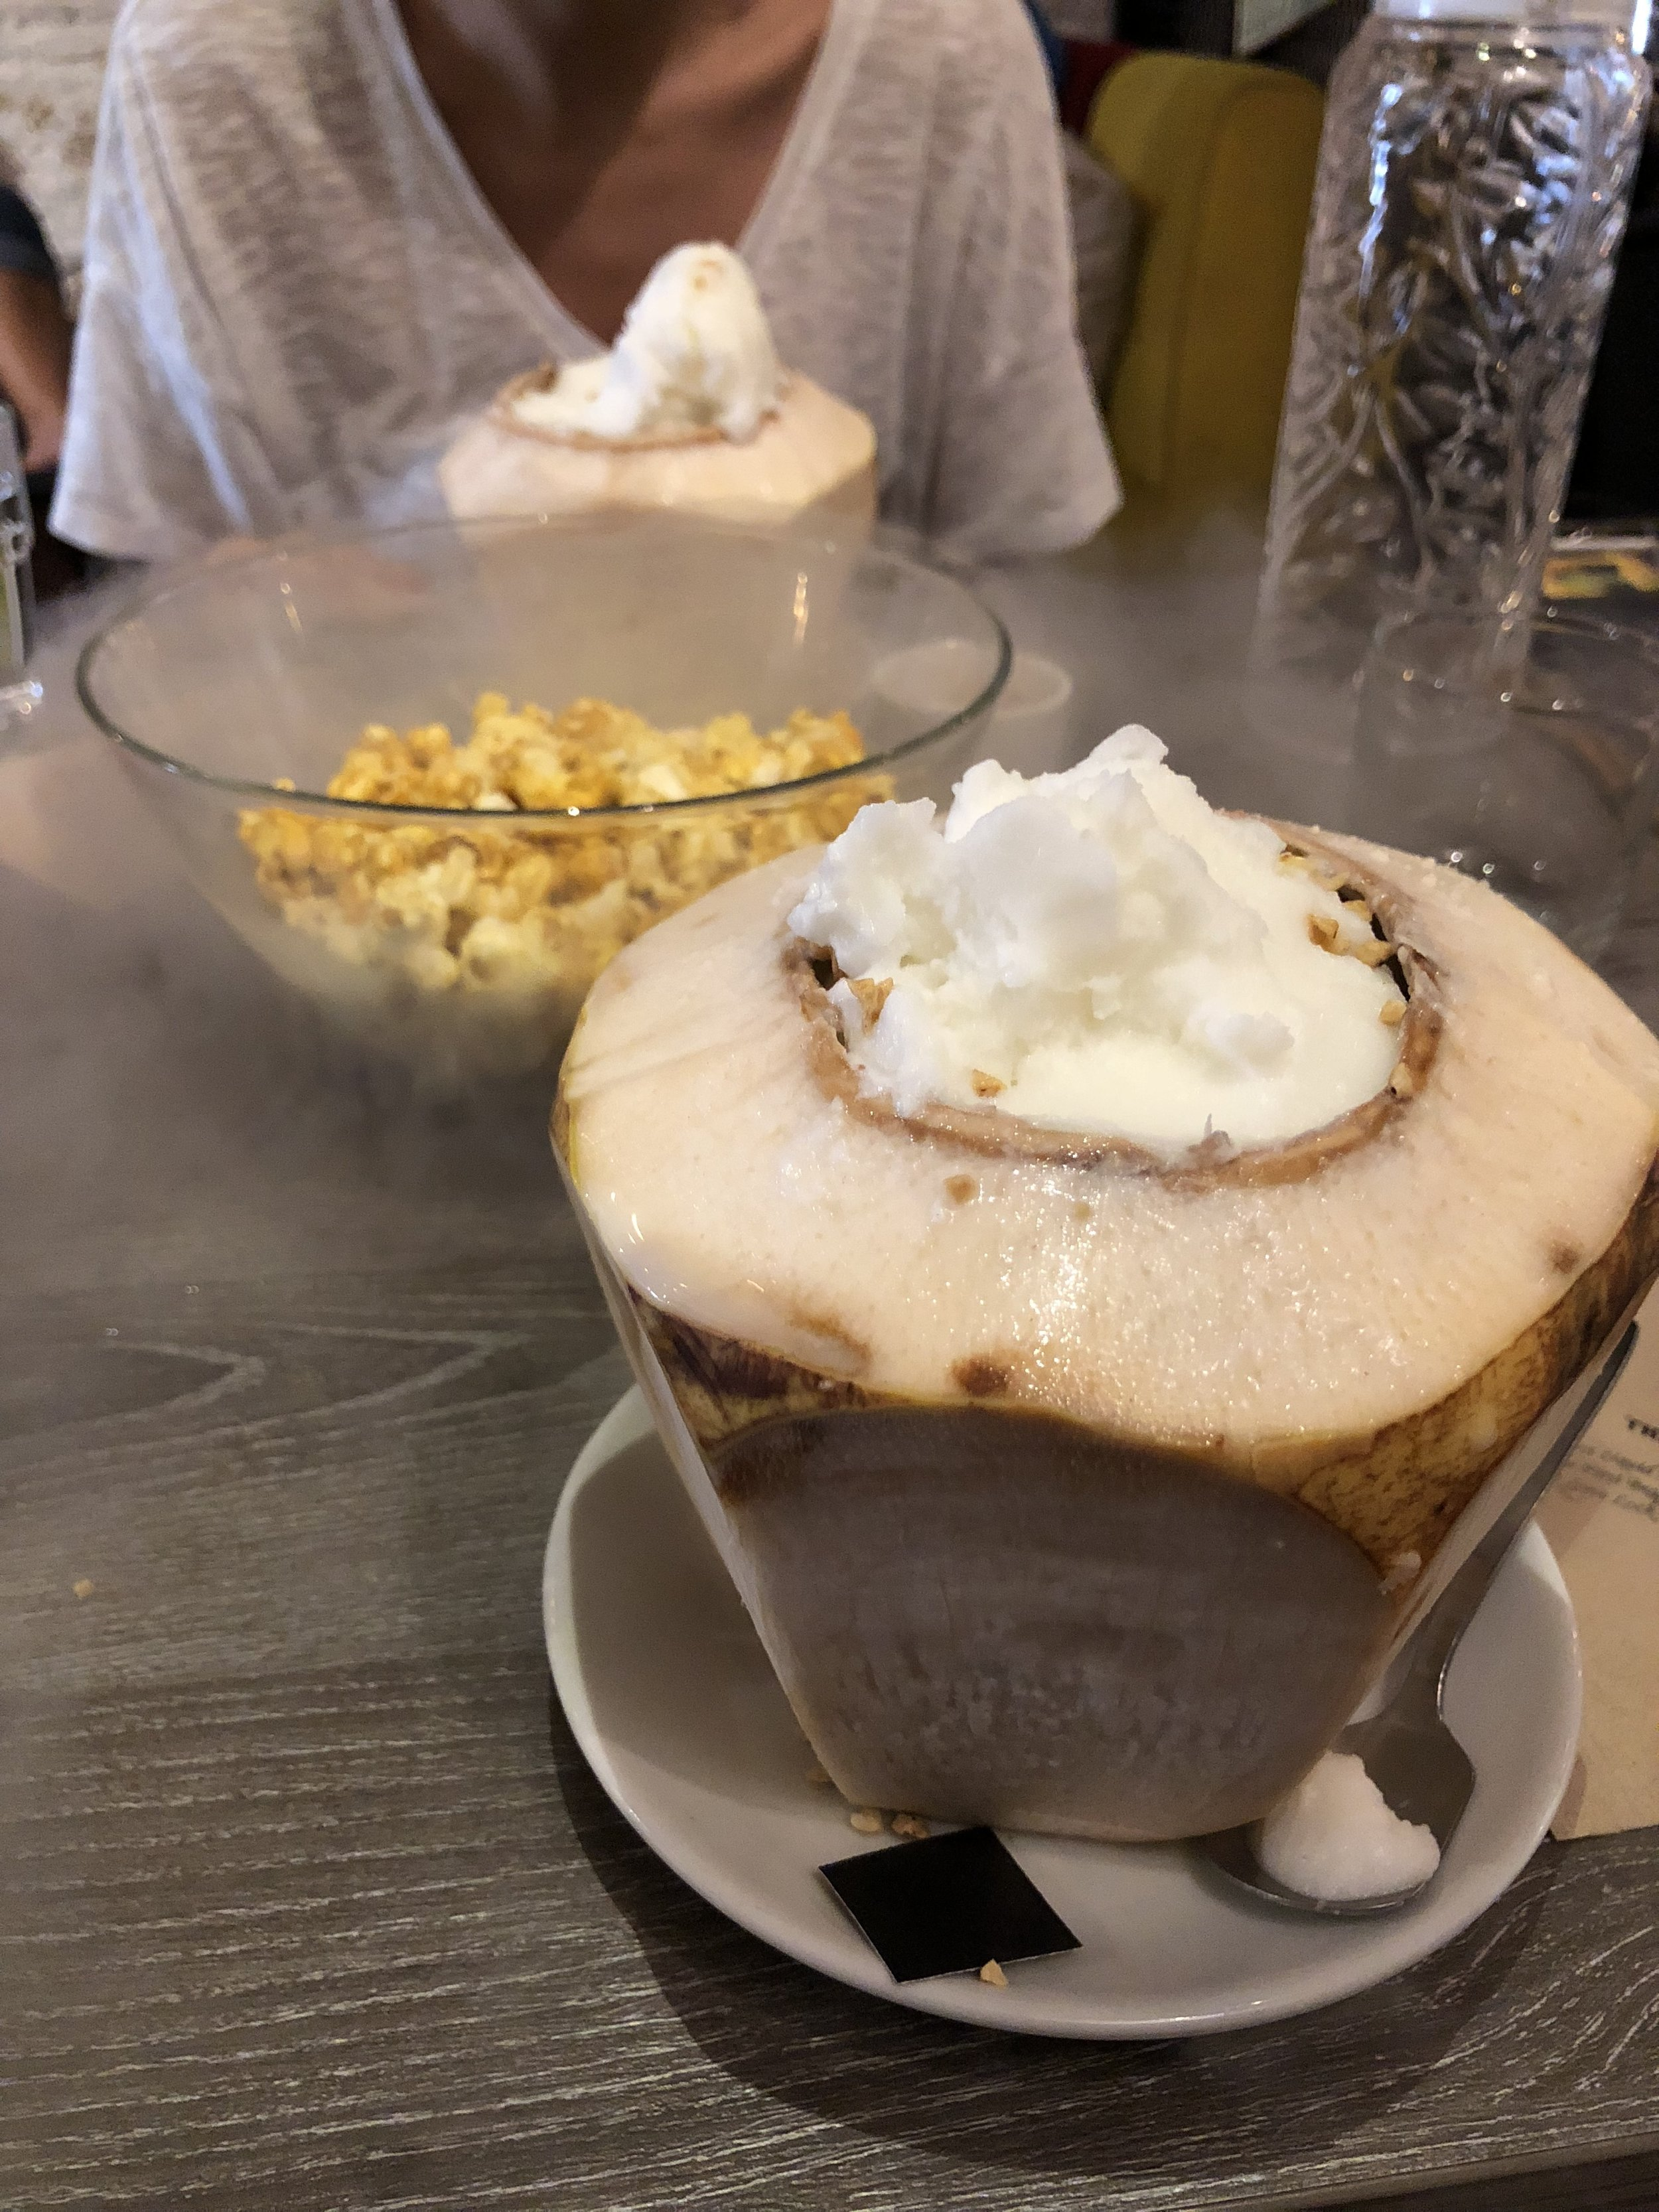 Coconut ice cream served in a shaved coconut! Another tasty and refreshing treat. In between our coconut ice creams is dry iced kettle corn.